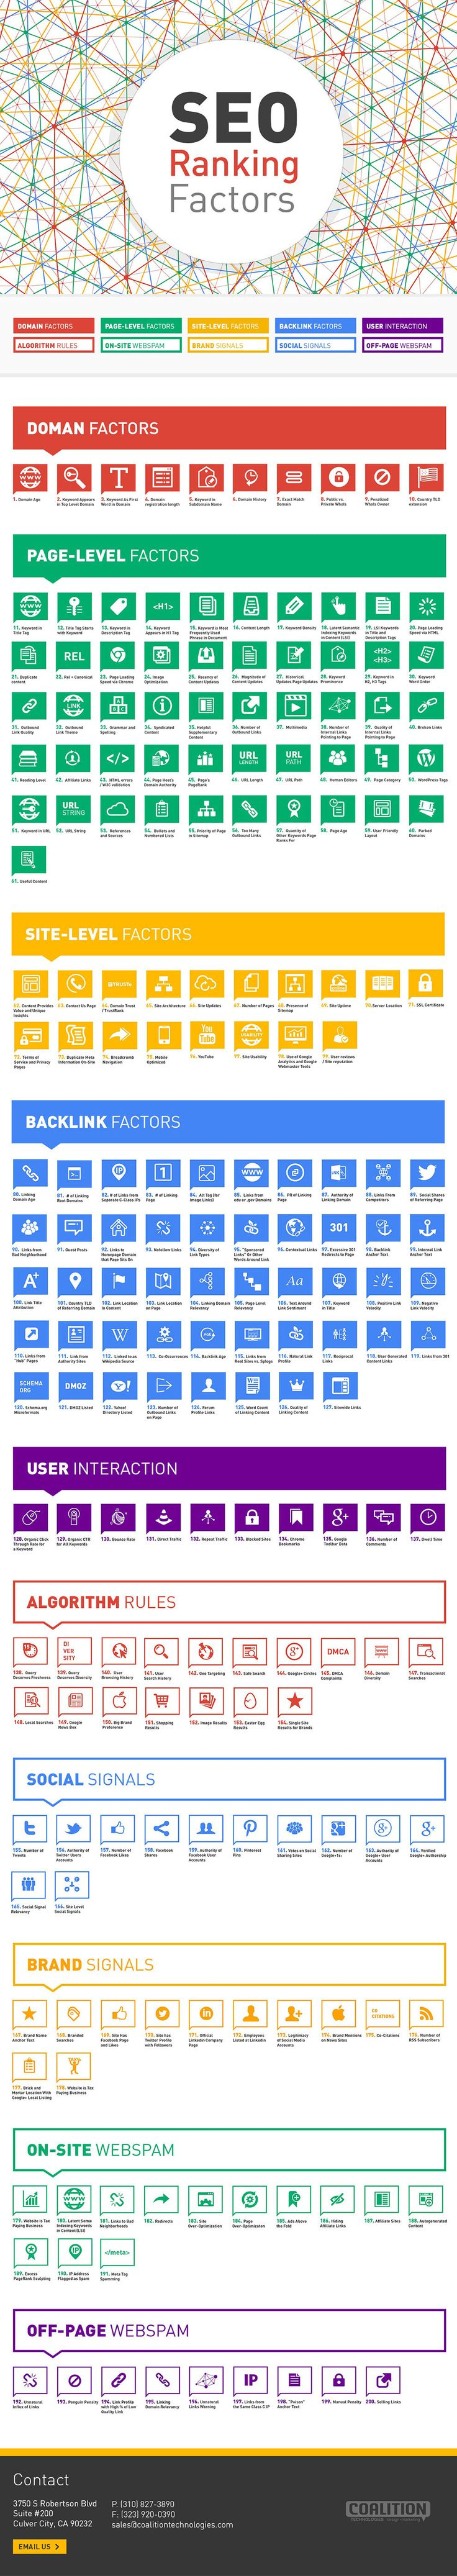 [INFOGRAPHIC] SEO Ranking Factors: Domain; Page; Site; Backlink; Interaction; Social; Algorithm; Brand; On-site; Off-site; Details>